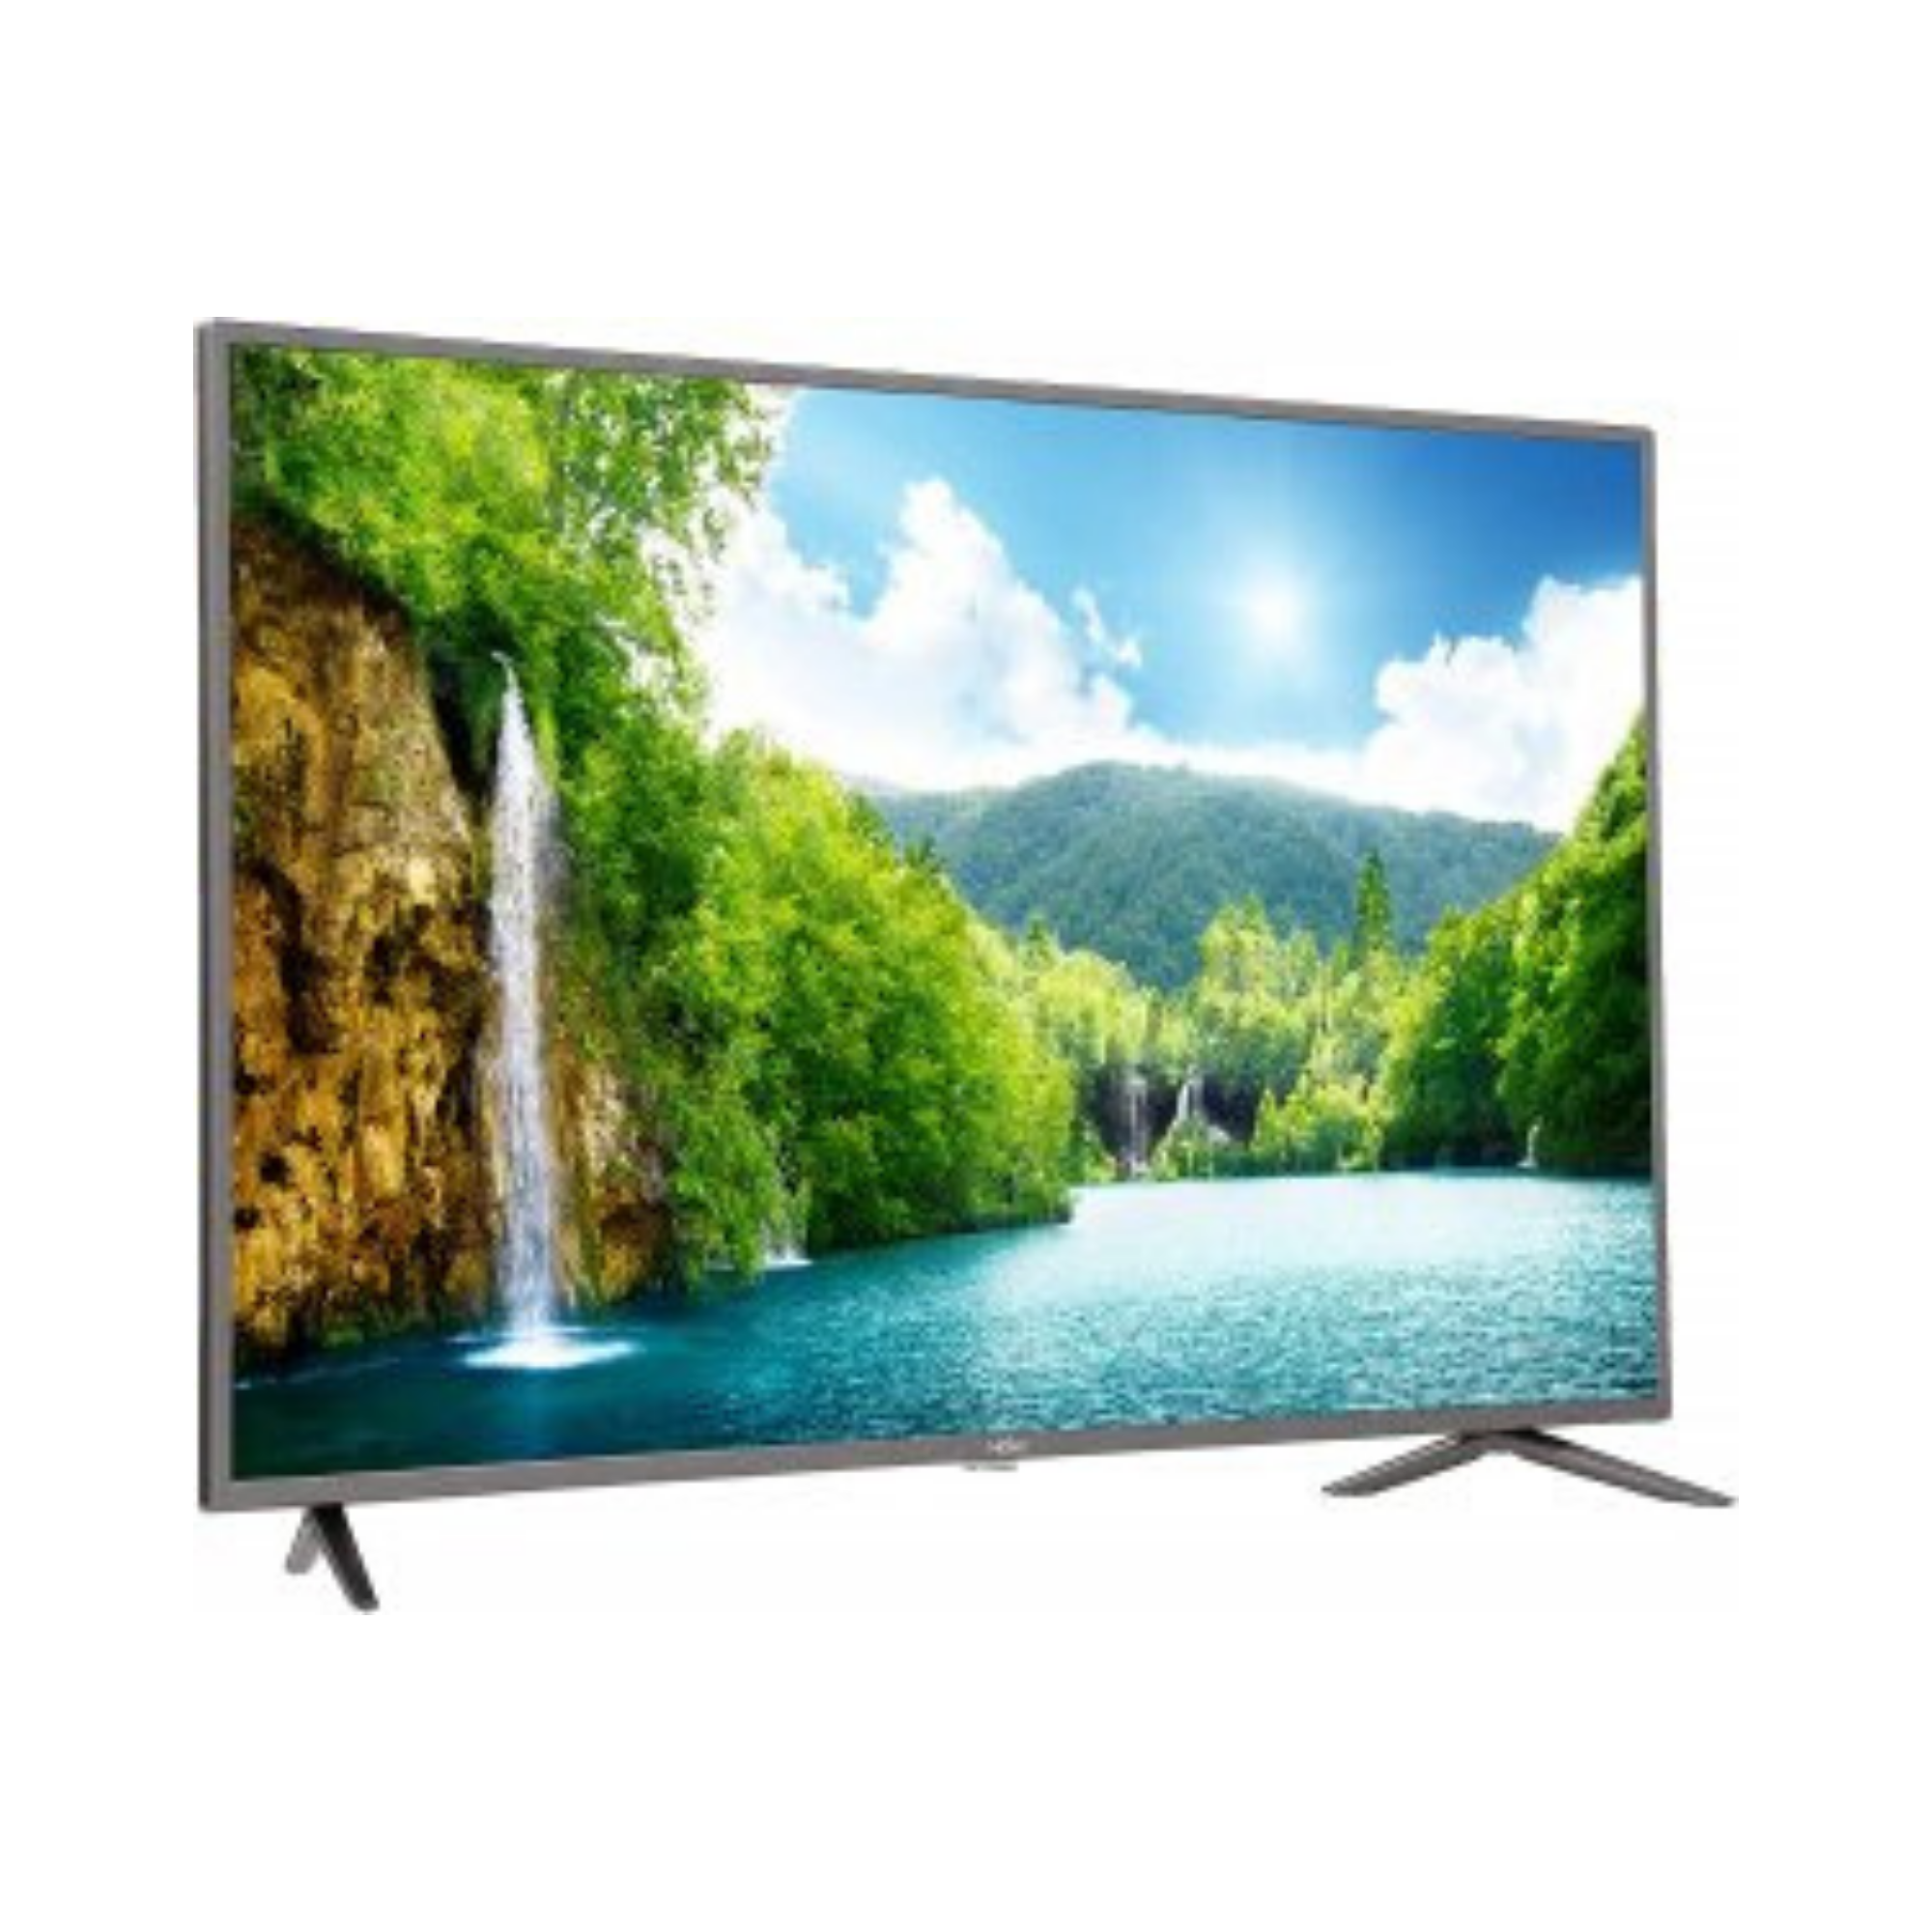 Haier 108 cm (43 inches) Full HD LED Smart TV LE43F9000AP (Platinum)